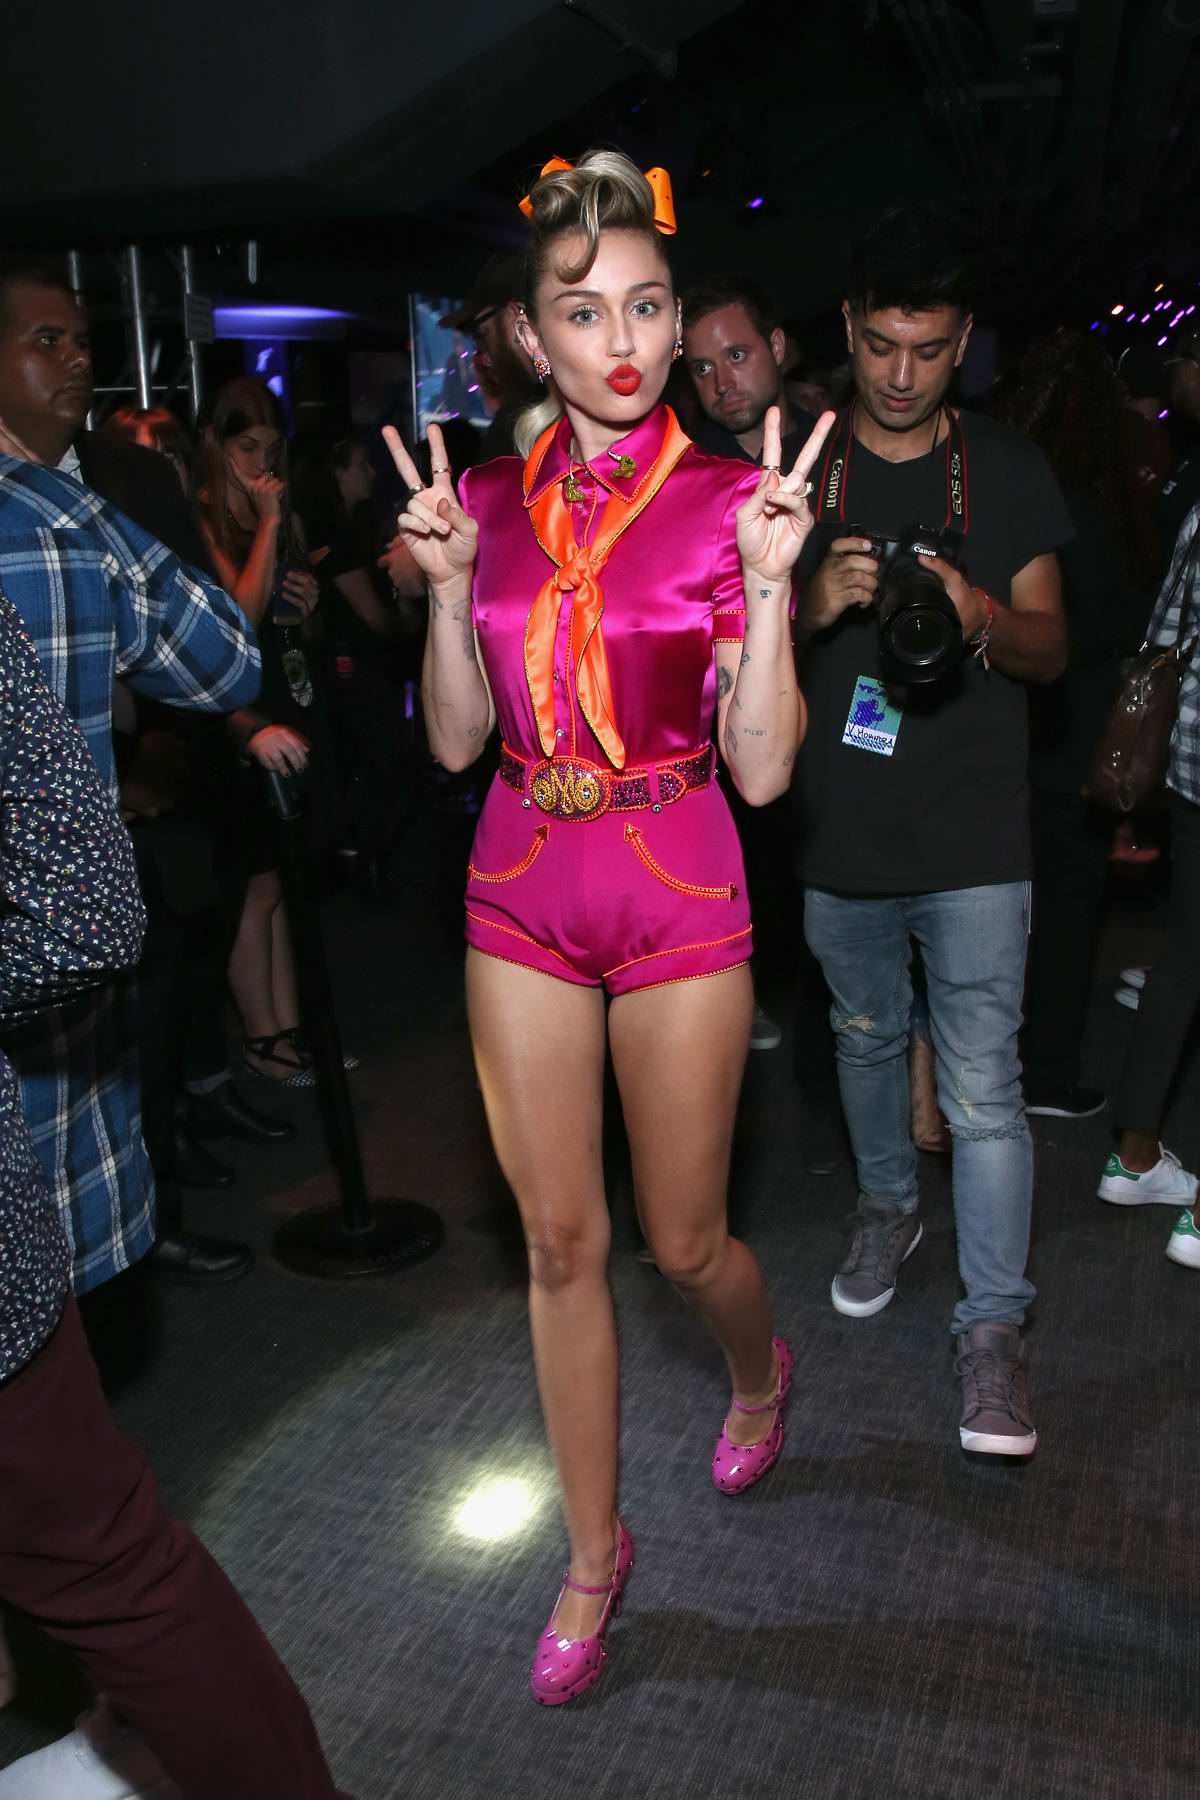 Miley Cyrus at 2017 MTV Video Music Awards at the Forum in Inglewood, California